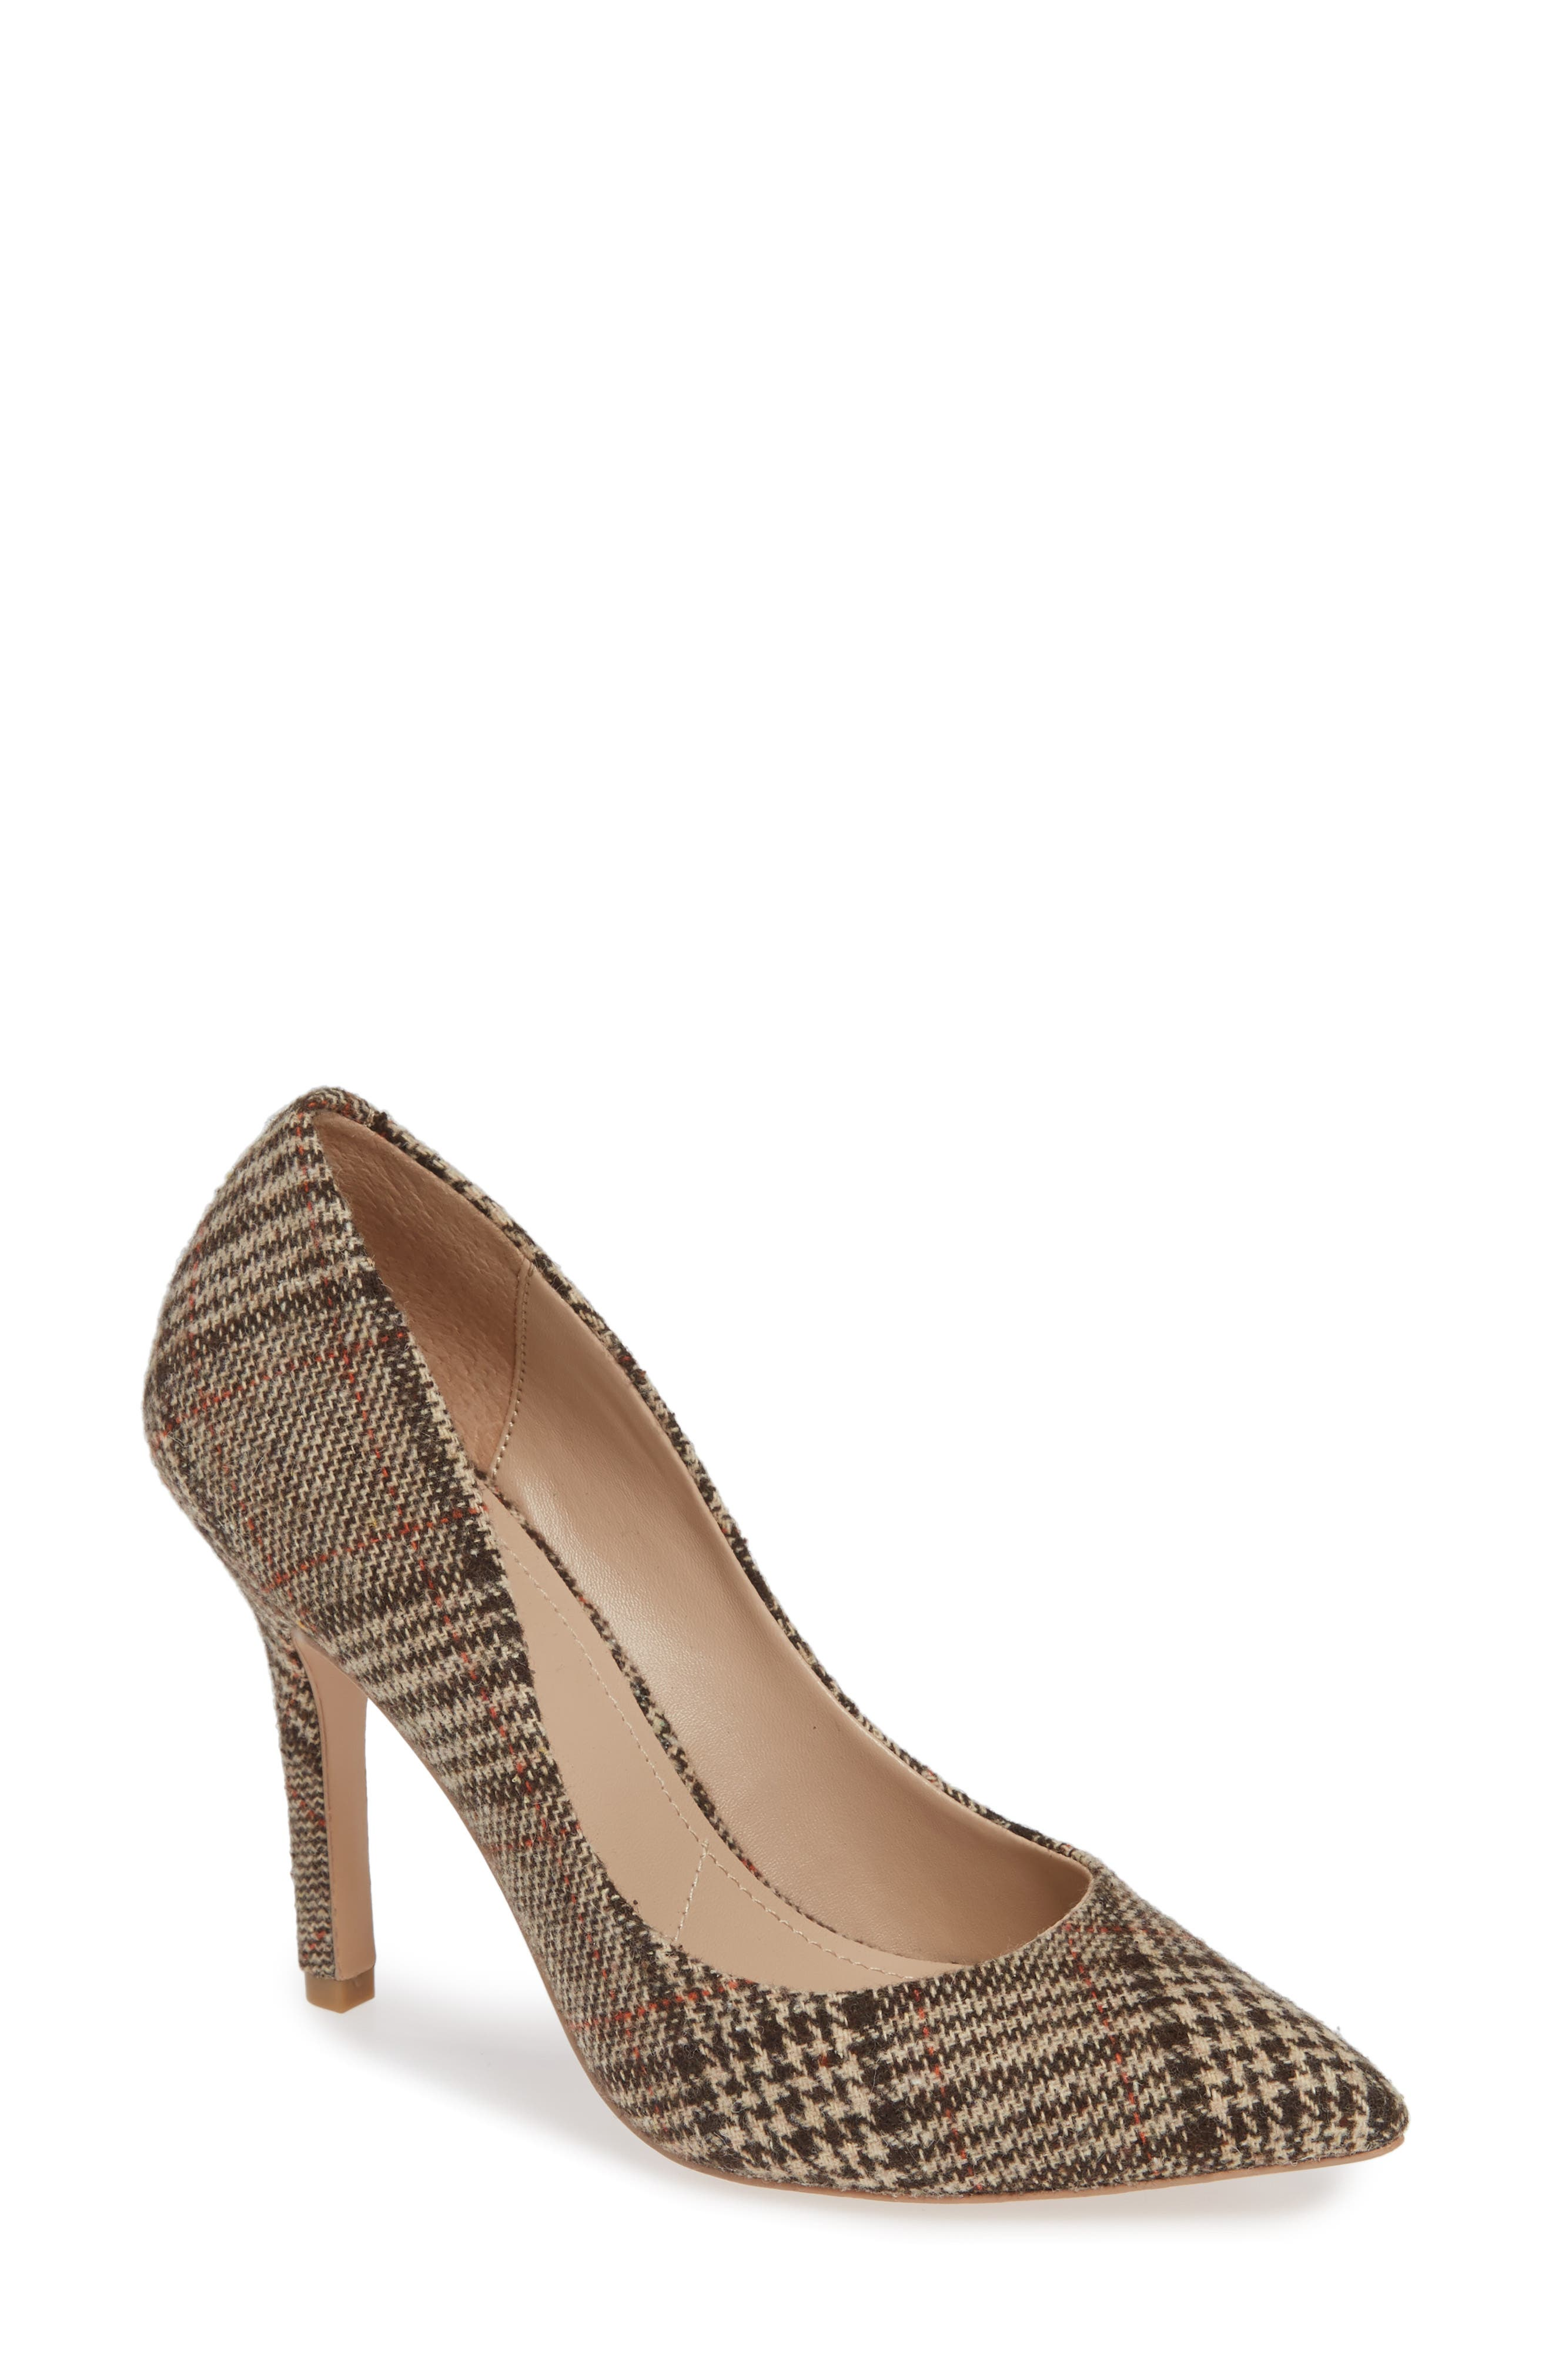 CHARLES BY CHARLES DAVID Maxx Pointy Toe Pump, Main, color, BROWN PLAID FABRIC